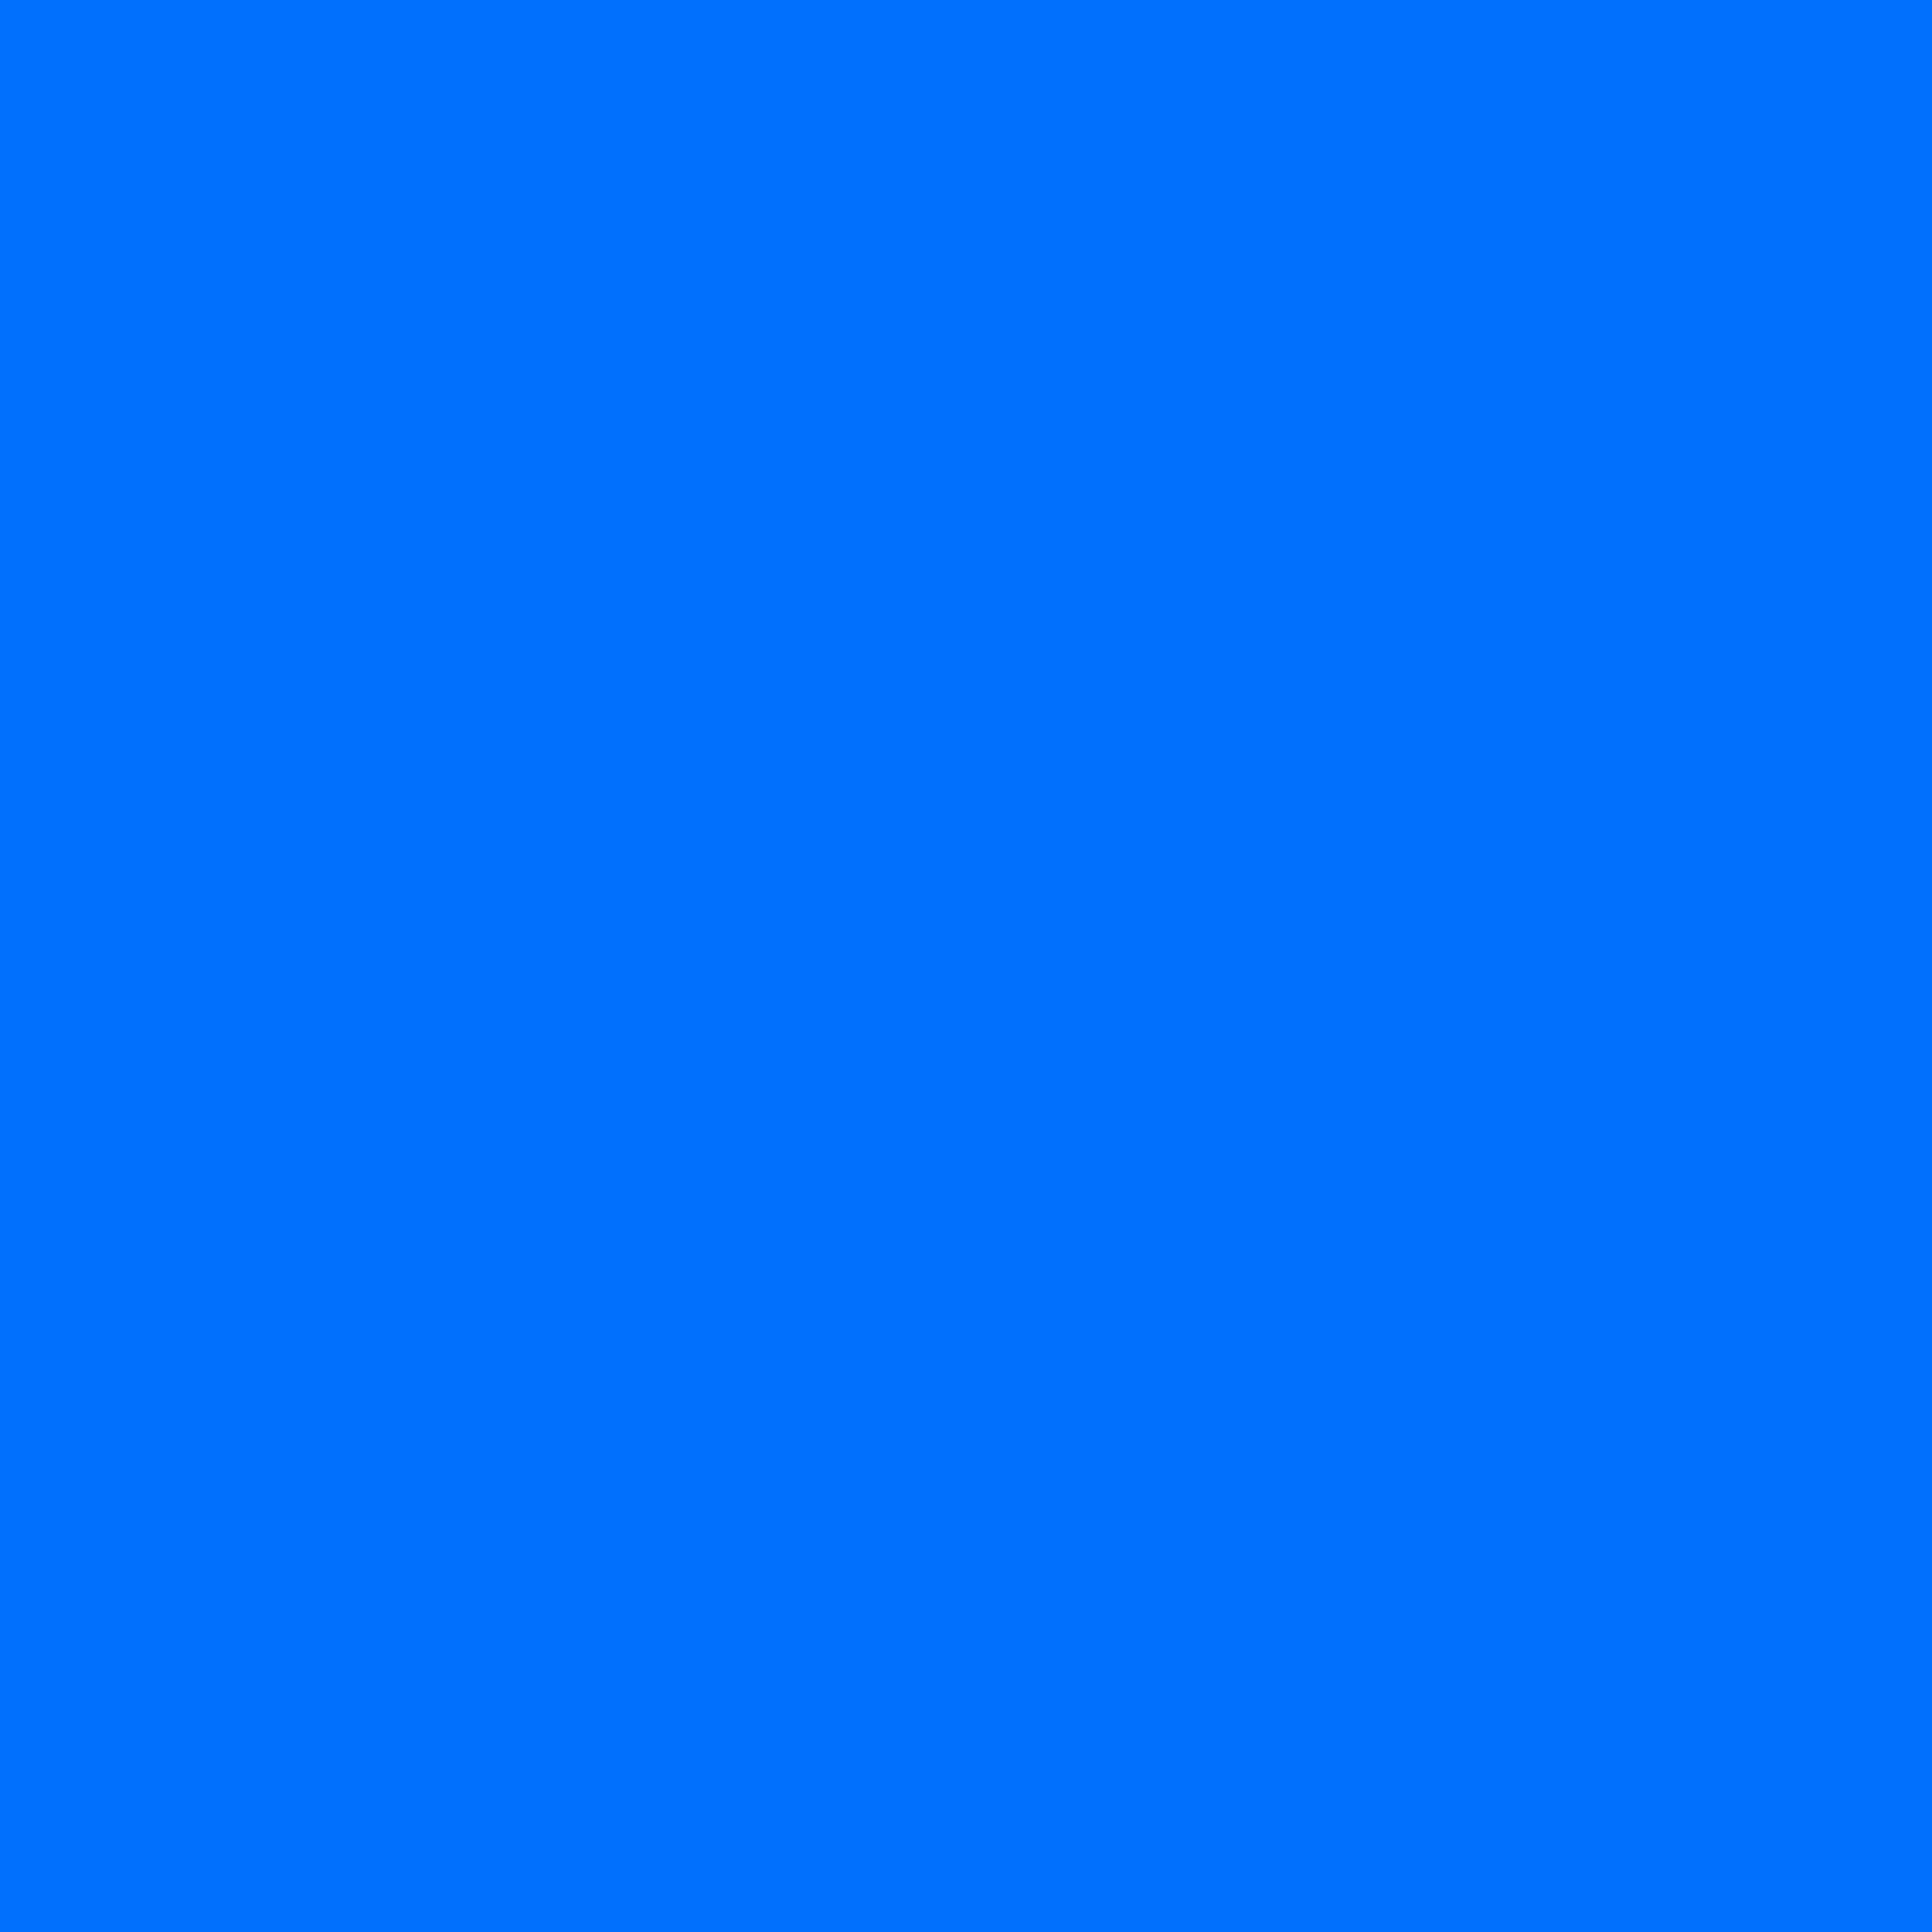 2732x2732 Brandeis Blue Solid Color Background